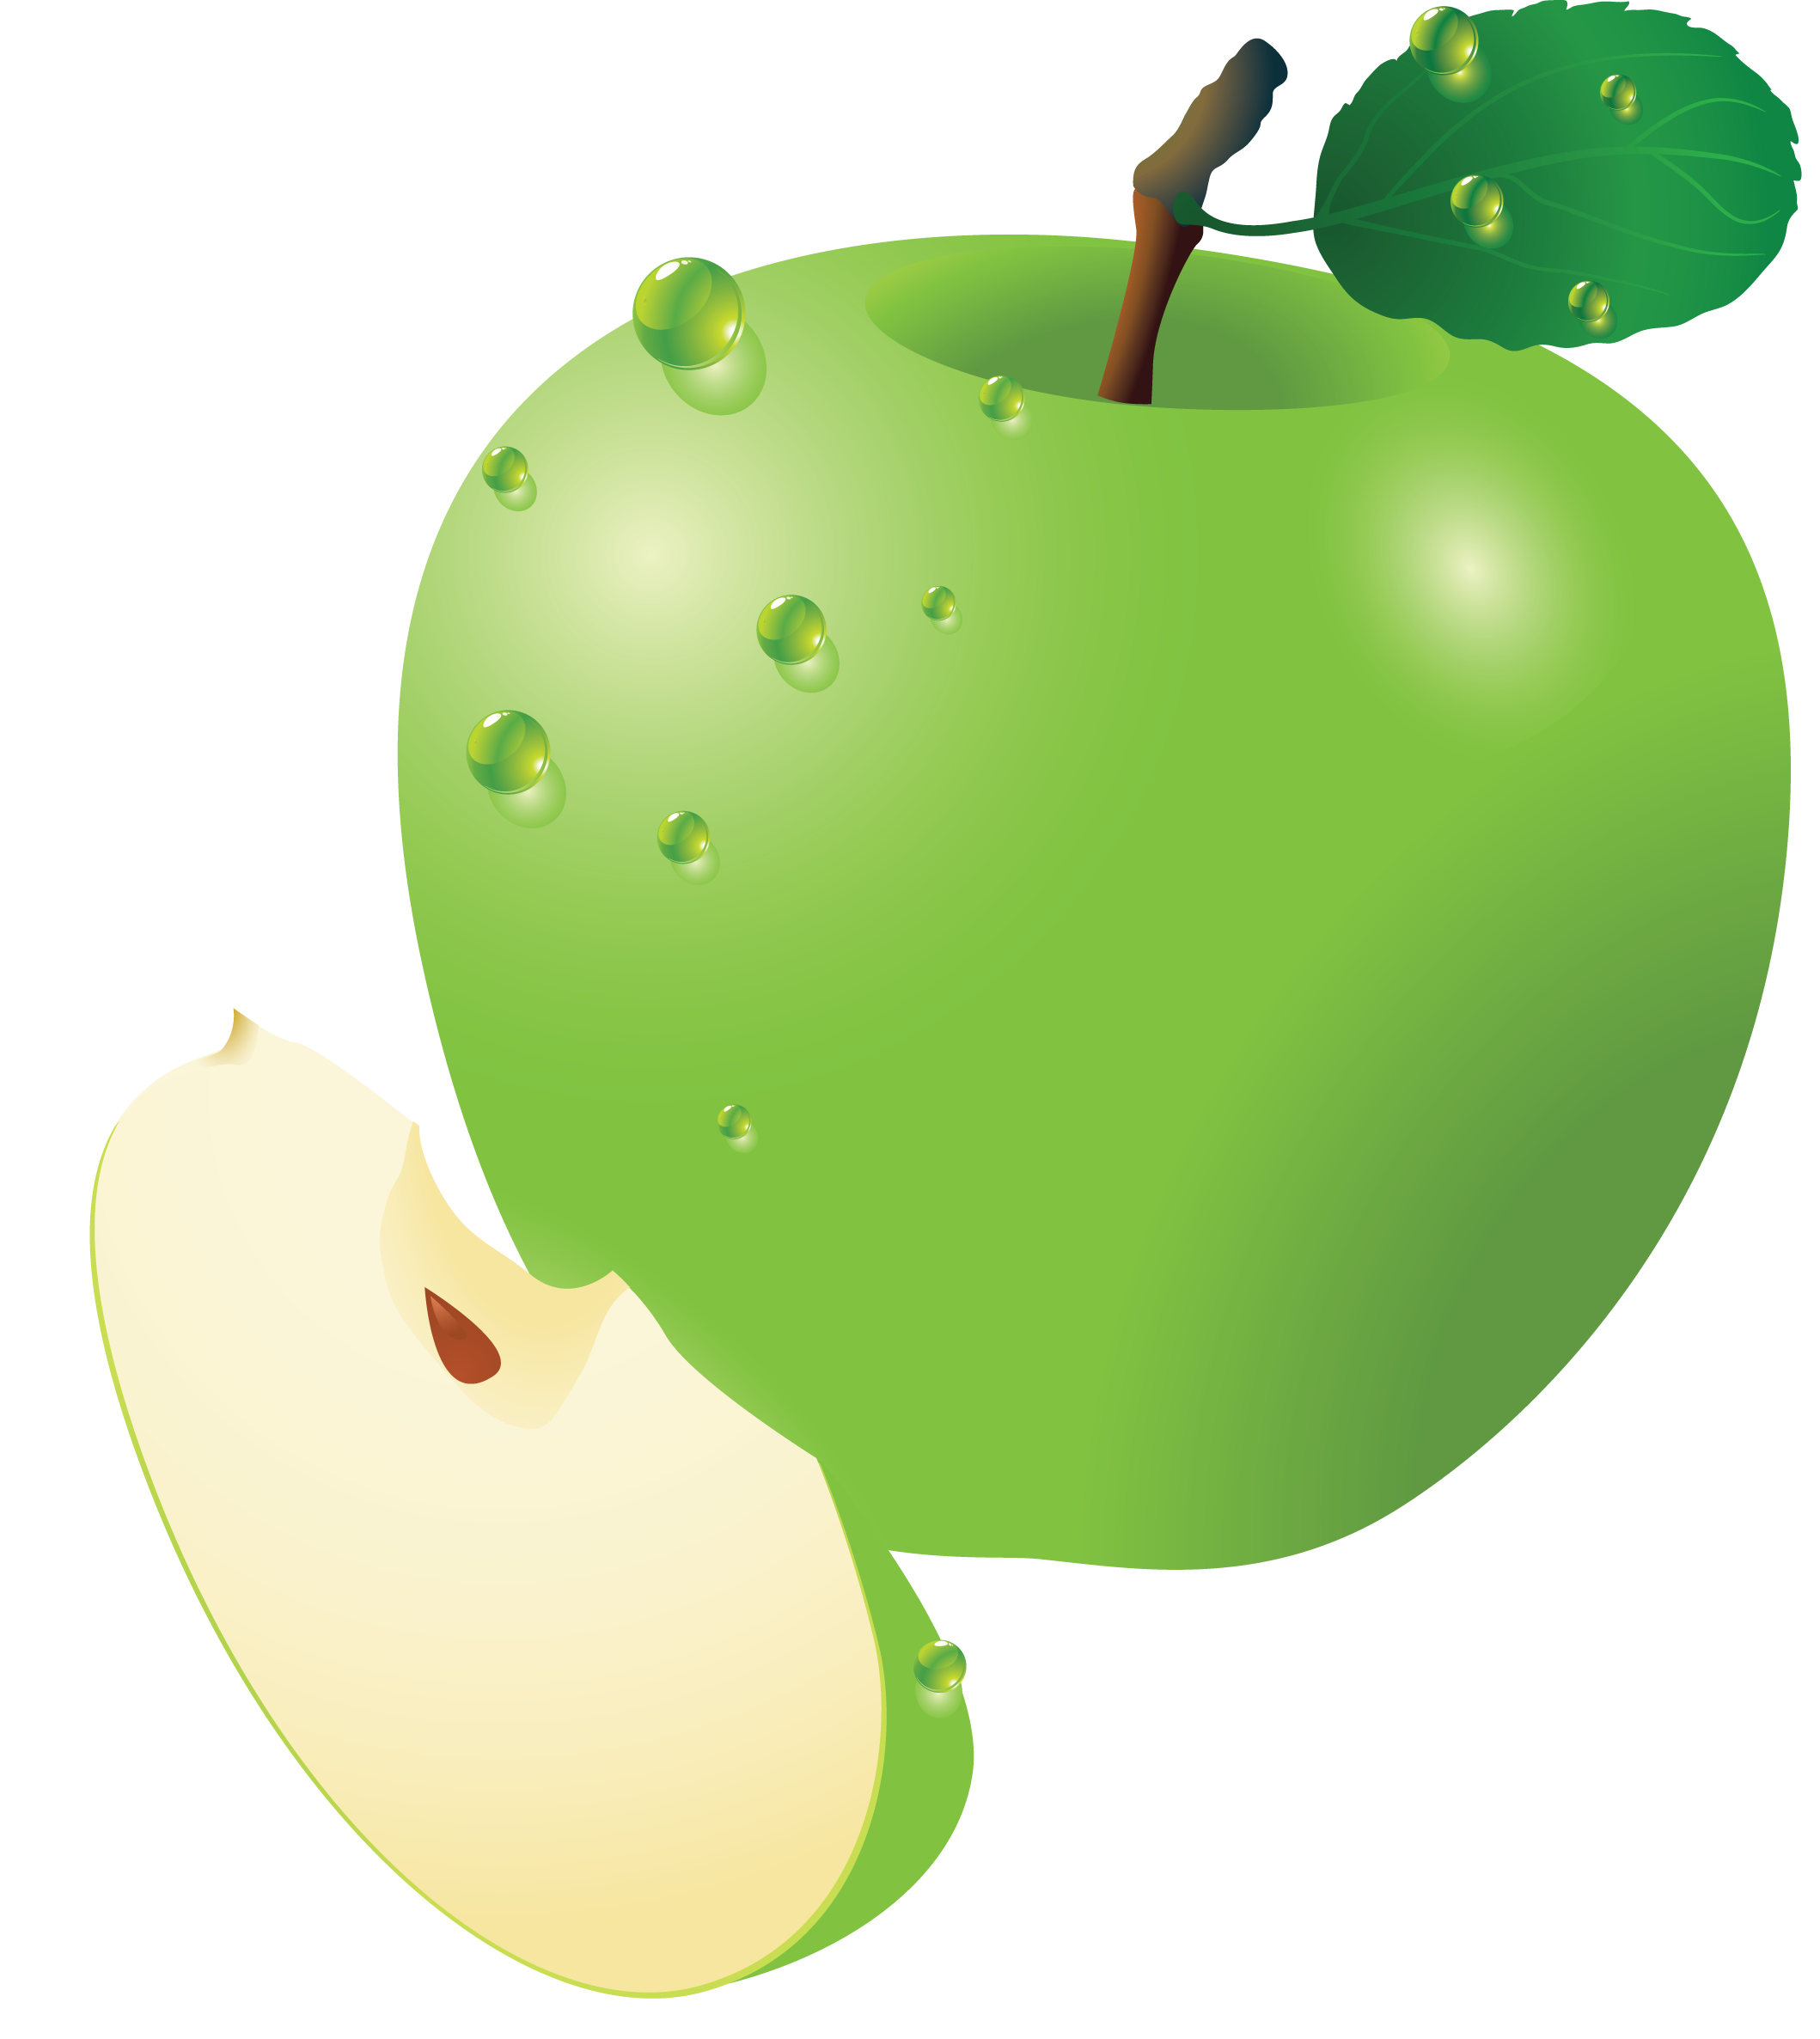 Green Apple S Png Image Green Apple Apple Green